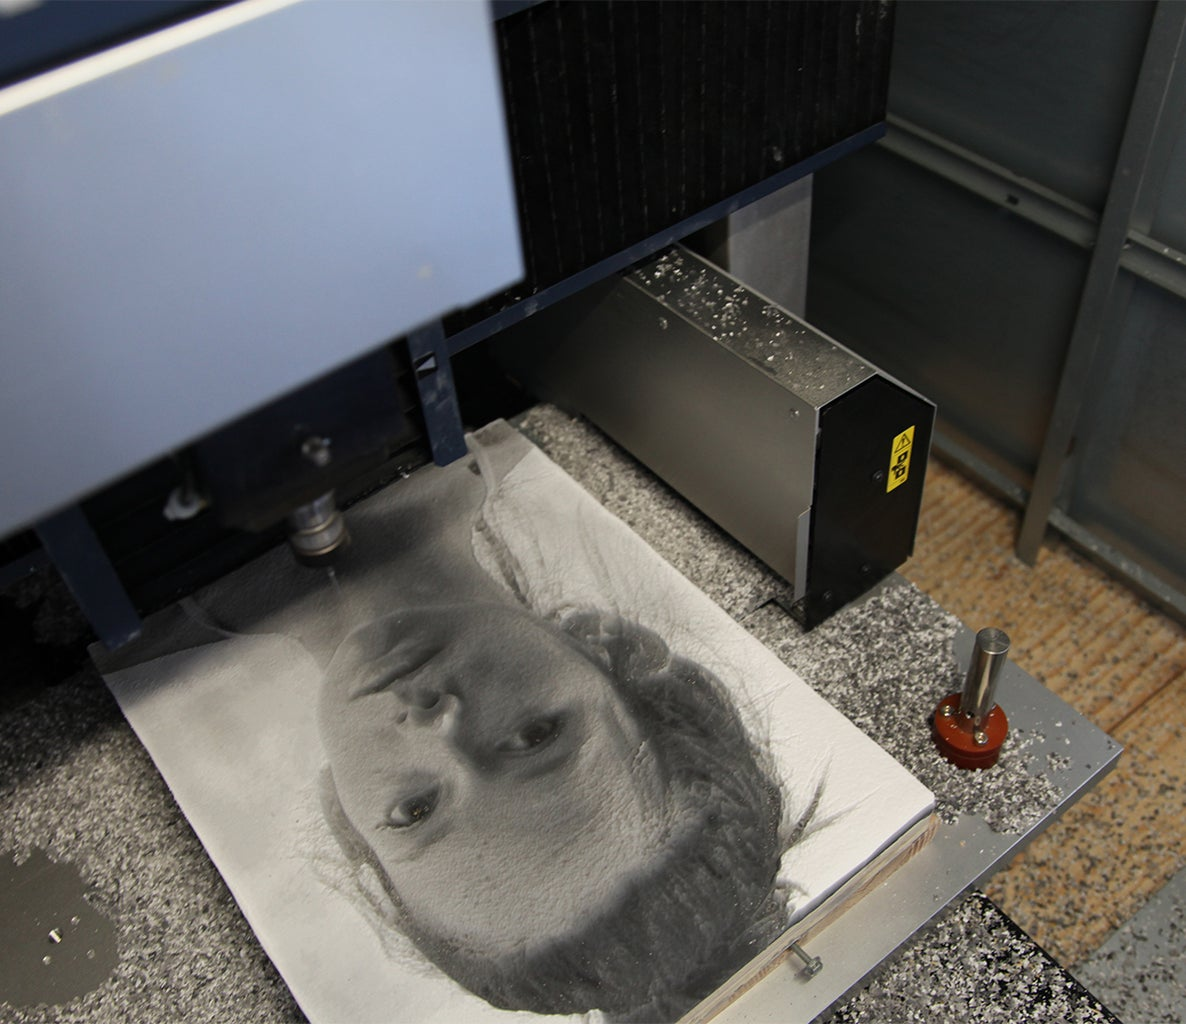 Machining an Image Into a Slab of Paint